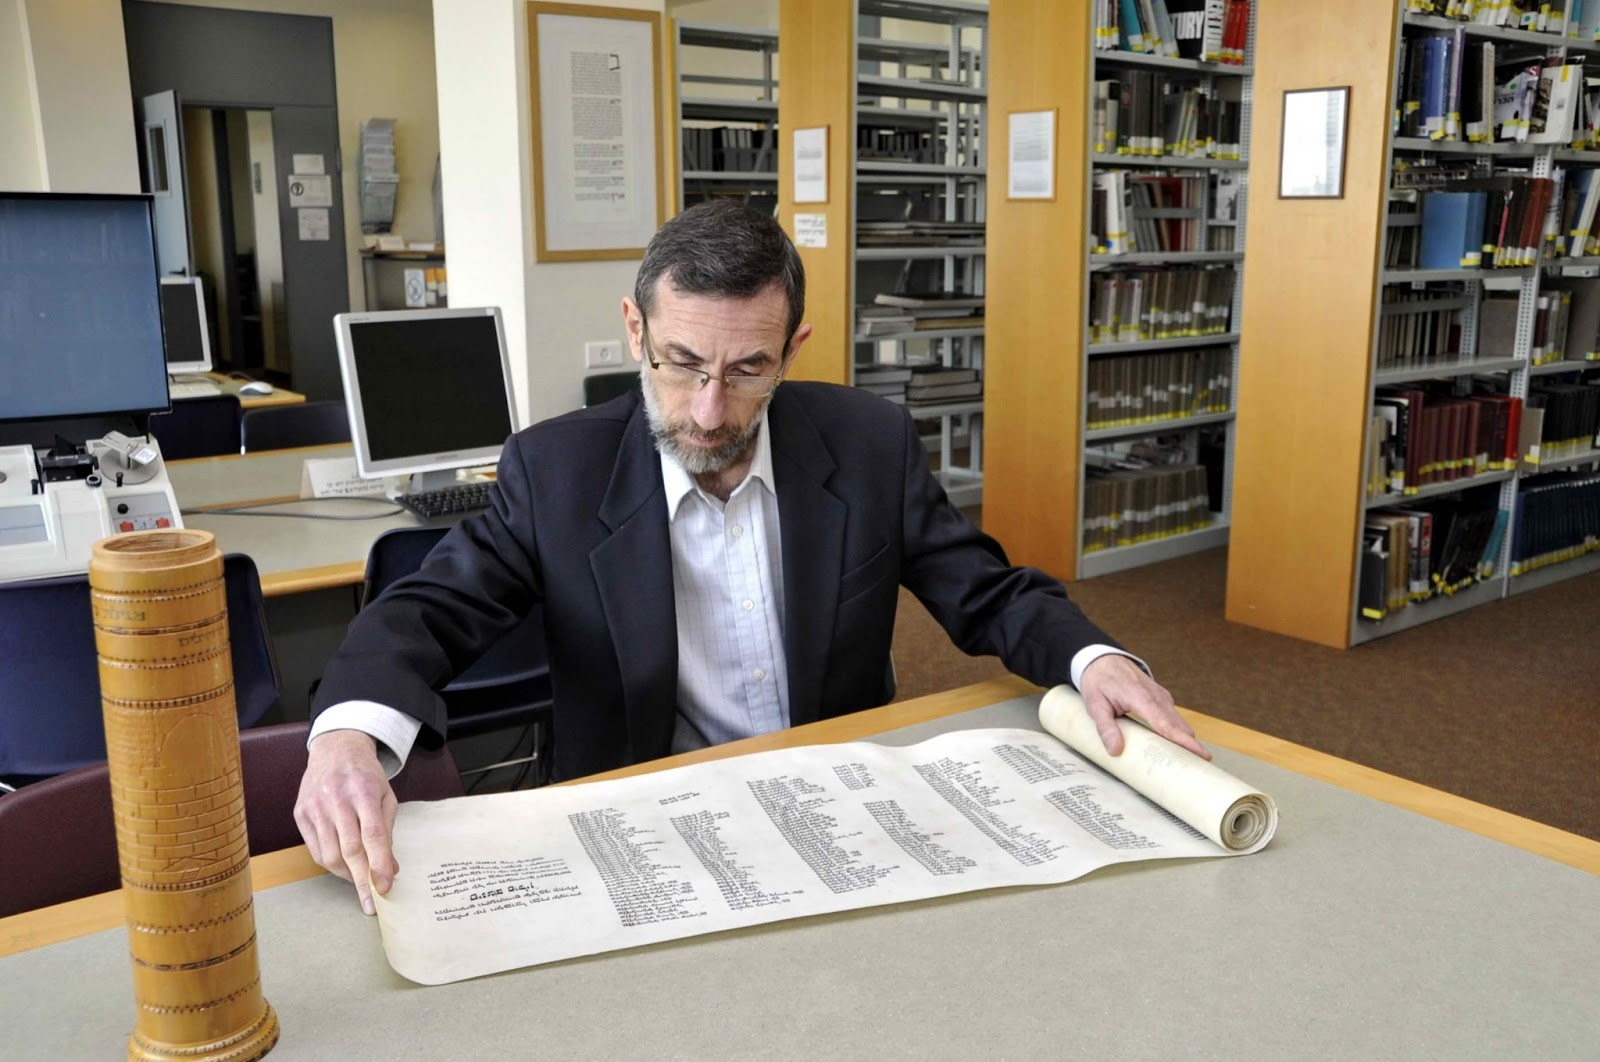 Alexander Avram examines the scroll of names